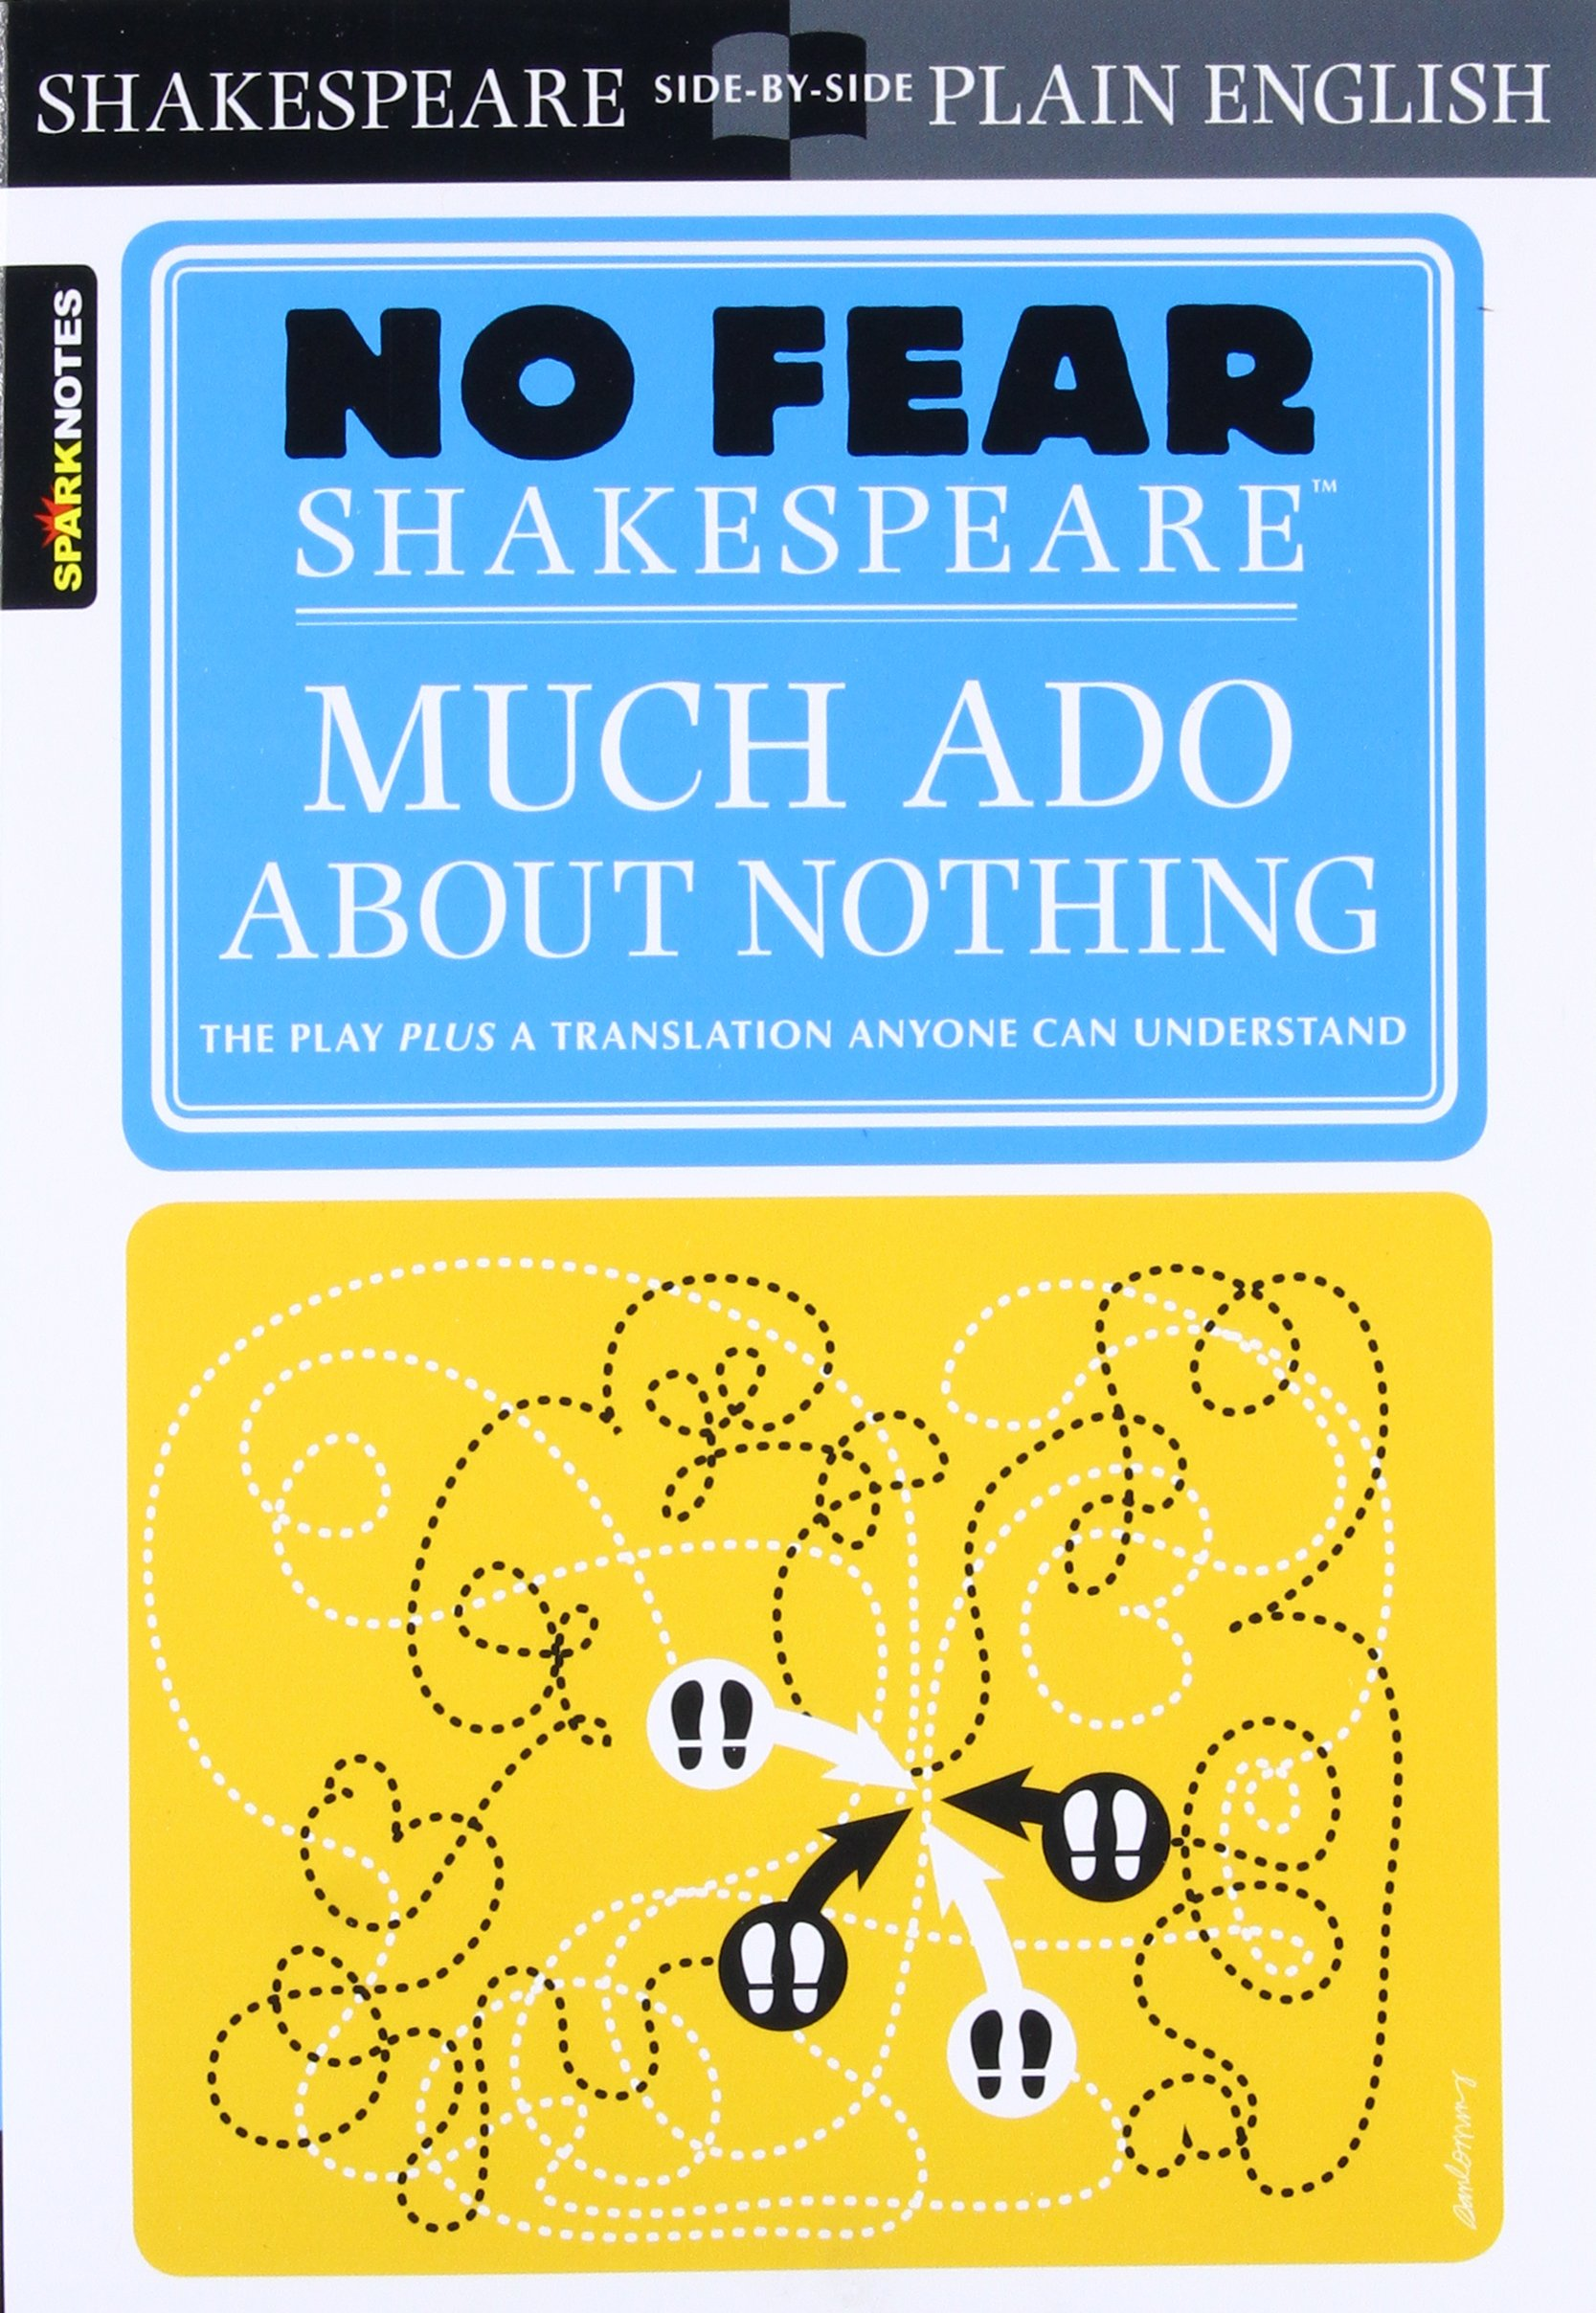 Amazon Com Much Ado About Nothing No Fear Shakespeare Volume 11 9781411401013 Sparknotes Books